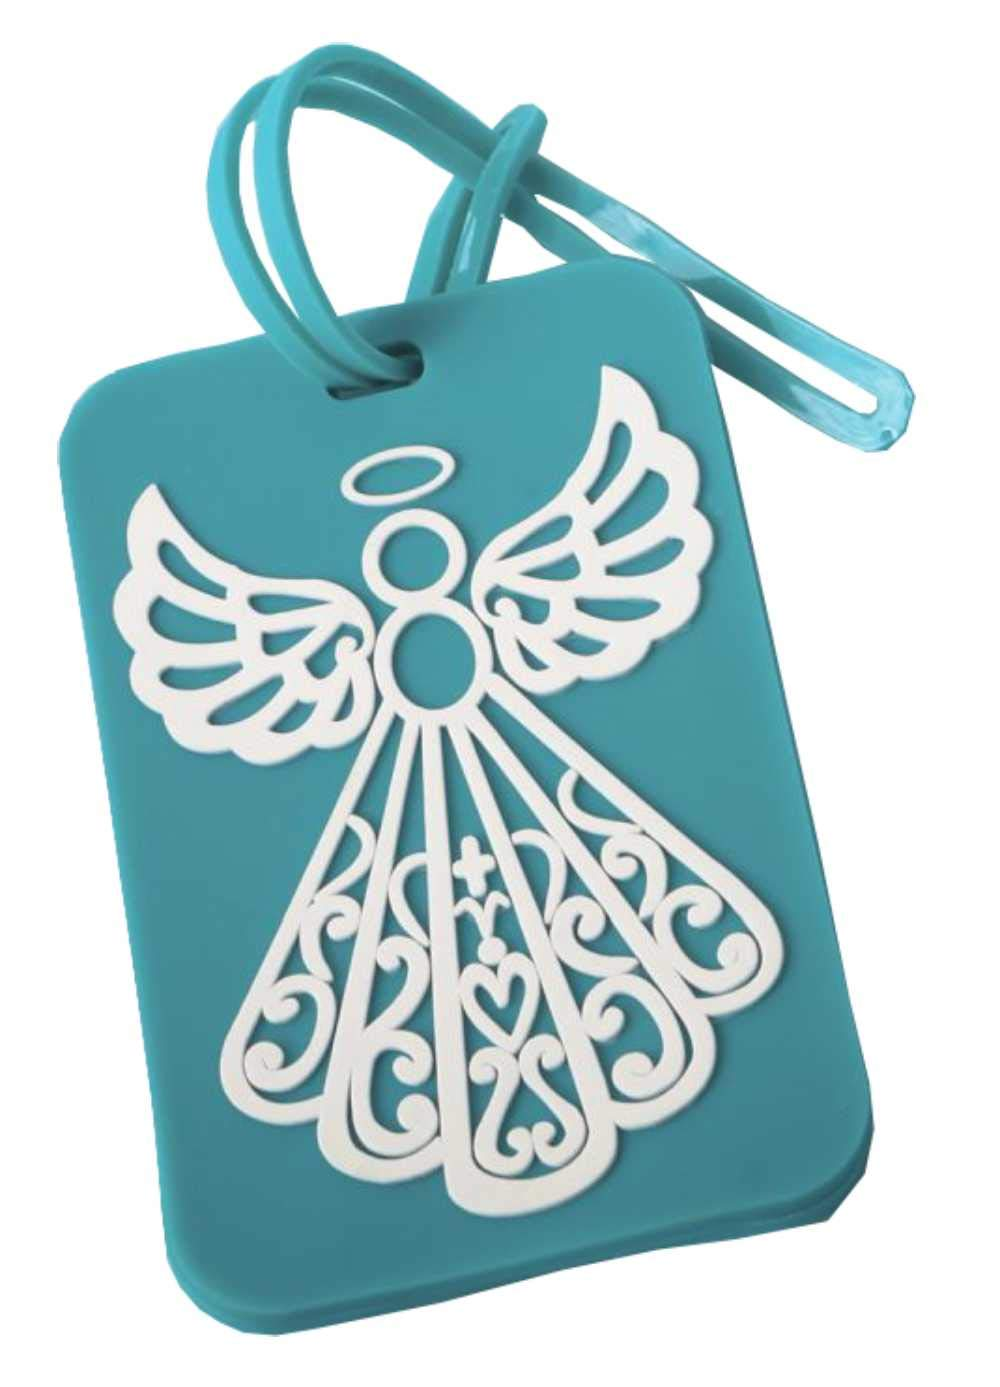 240 Fashioncraft Rubberized Turquoise Angel Design Luggage Tag Baby Shower Christening Baptism Religious Party Souvenir Favors